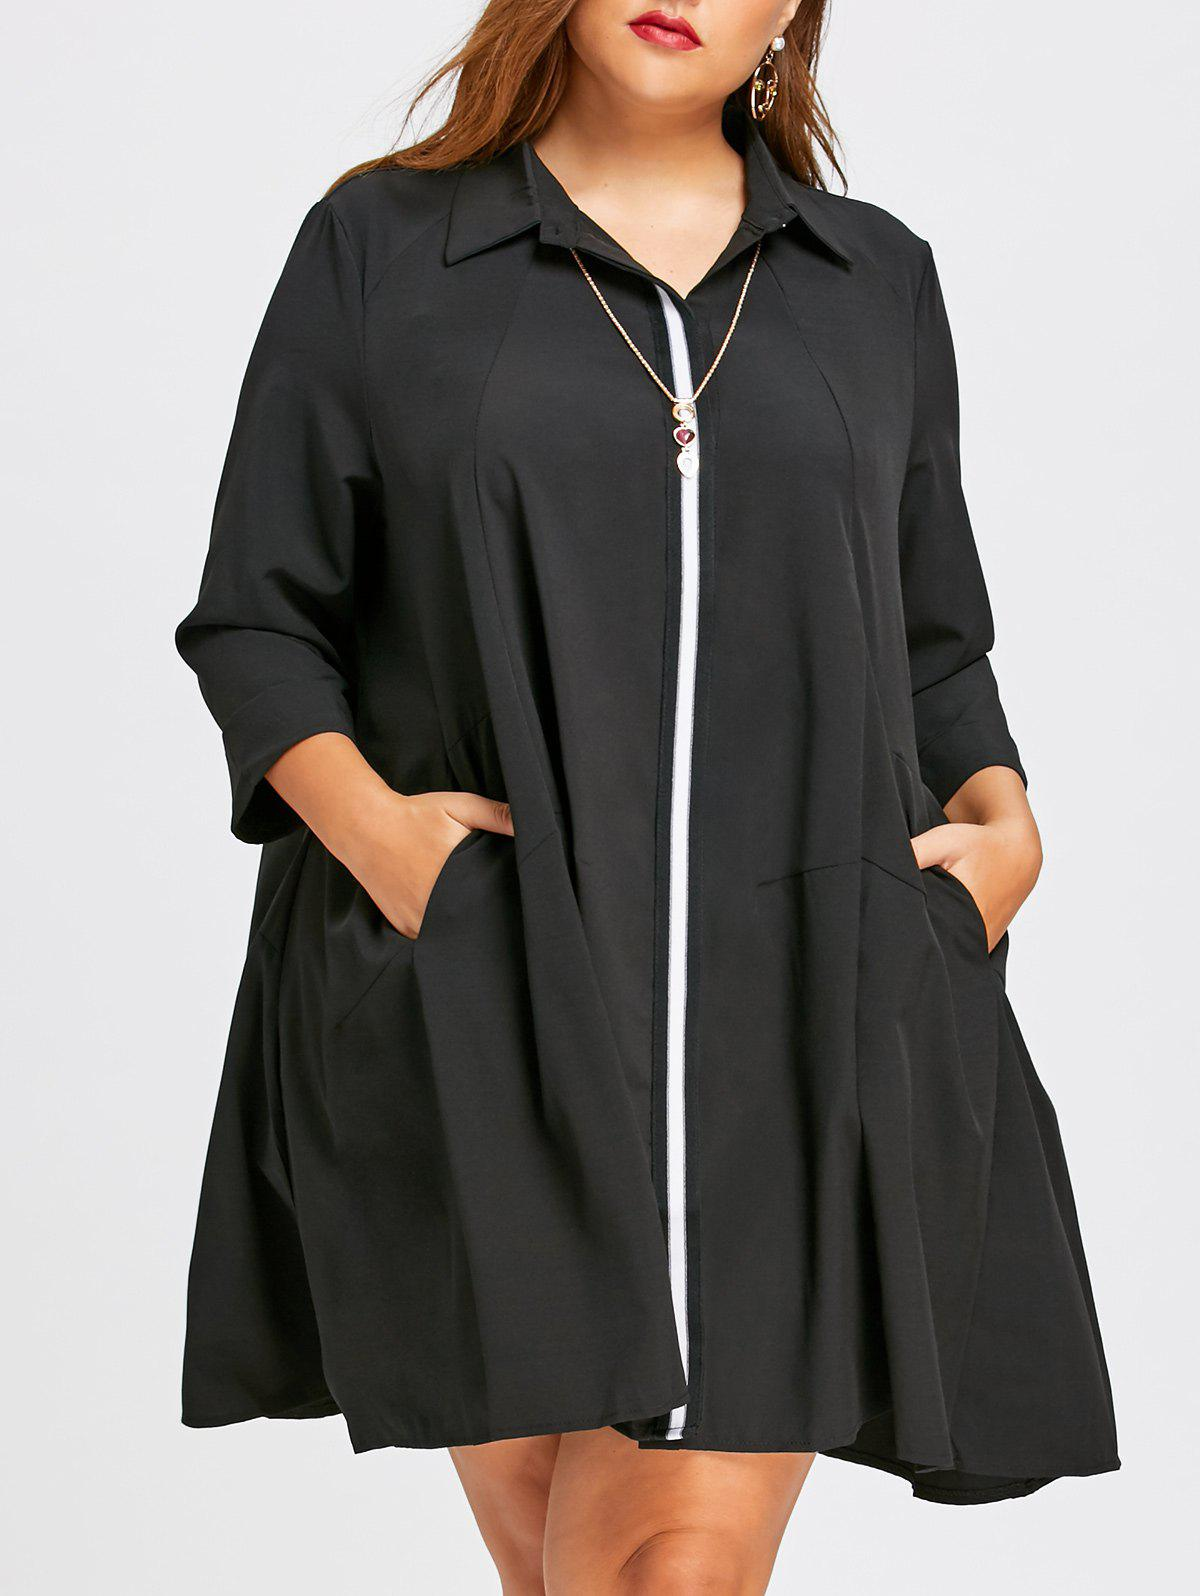 Long Plus Size Color Block BlouseWOMEN<br><br>Size: 5XL; Color: BLACK; Material: Polyester,Spandex; Shirt Length: Long; Sleeve Length: Three Quarter; Collar: Shirt Collar; Style: Fashion; Season: Fall,Spring; Pattern Type: Others; Weight: 0.4400kg; Package Contents: 1 x Blouse;